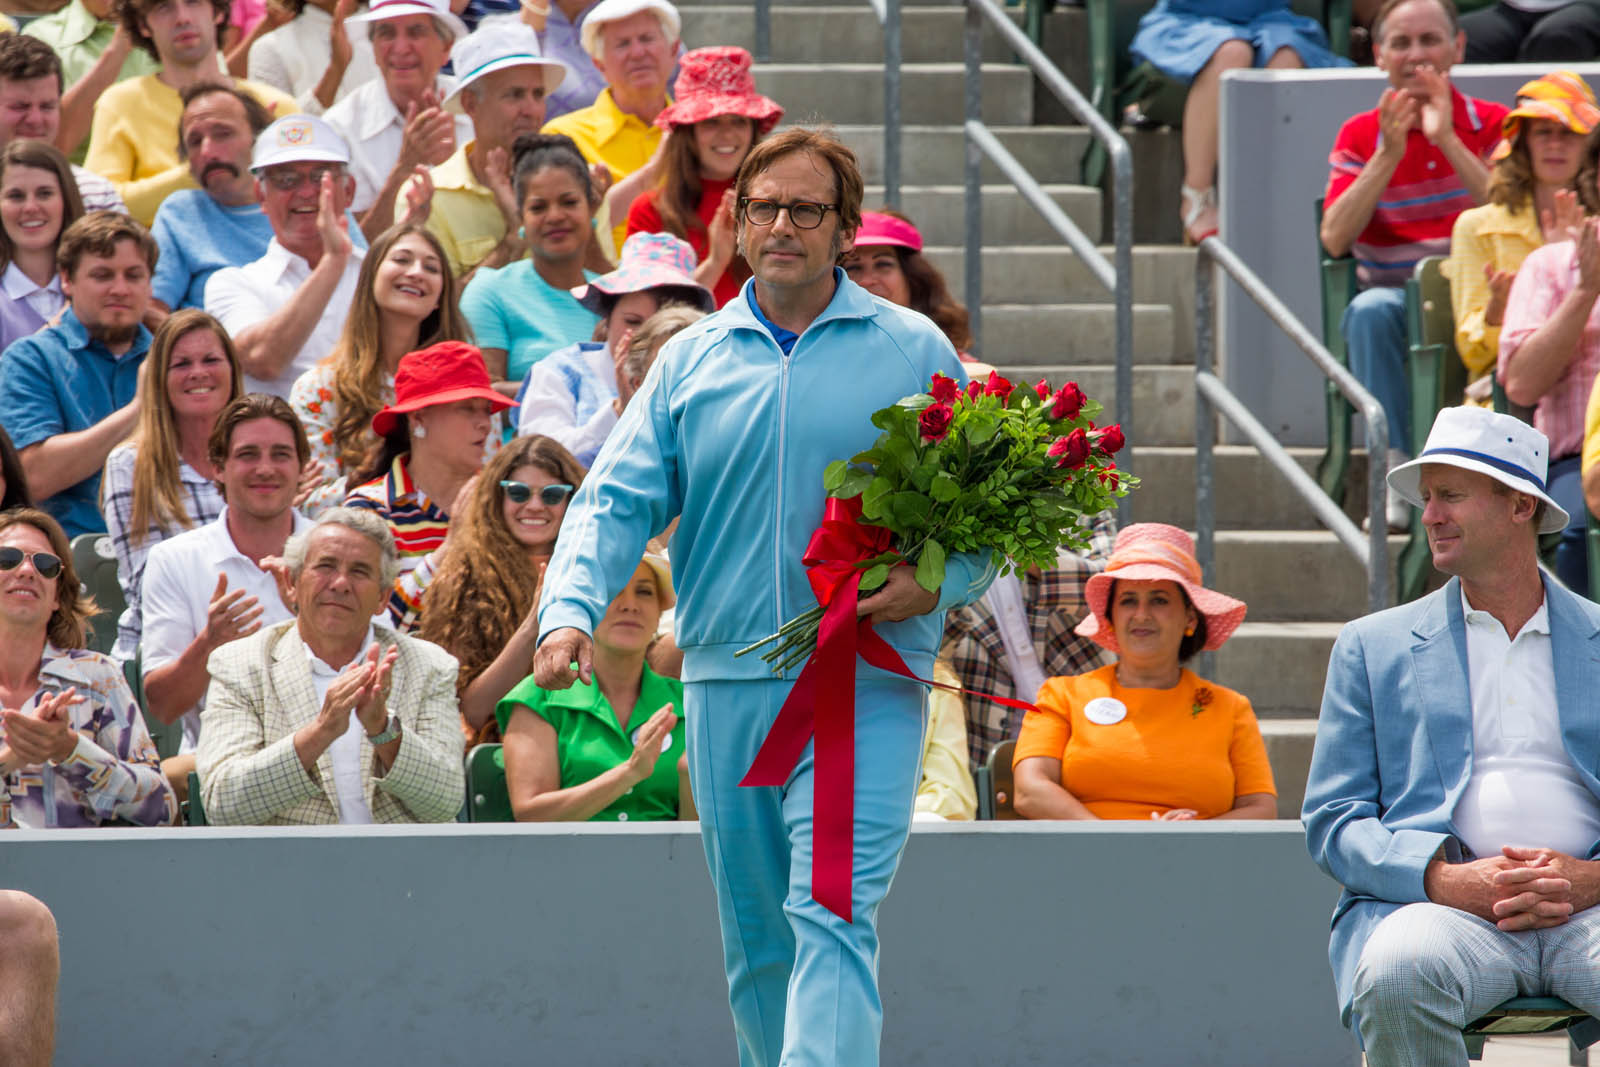 Battle of the sexes, le film